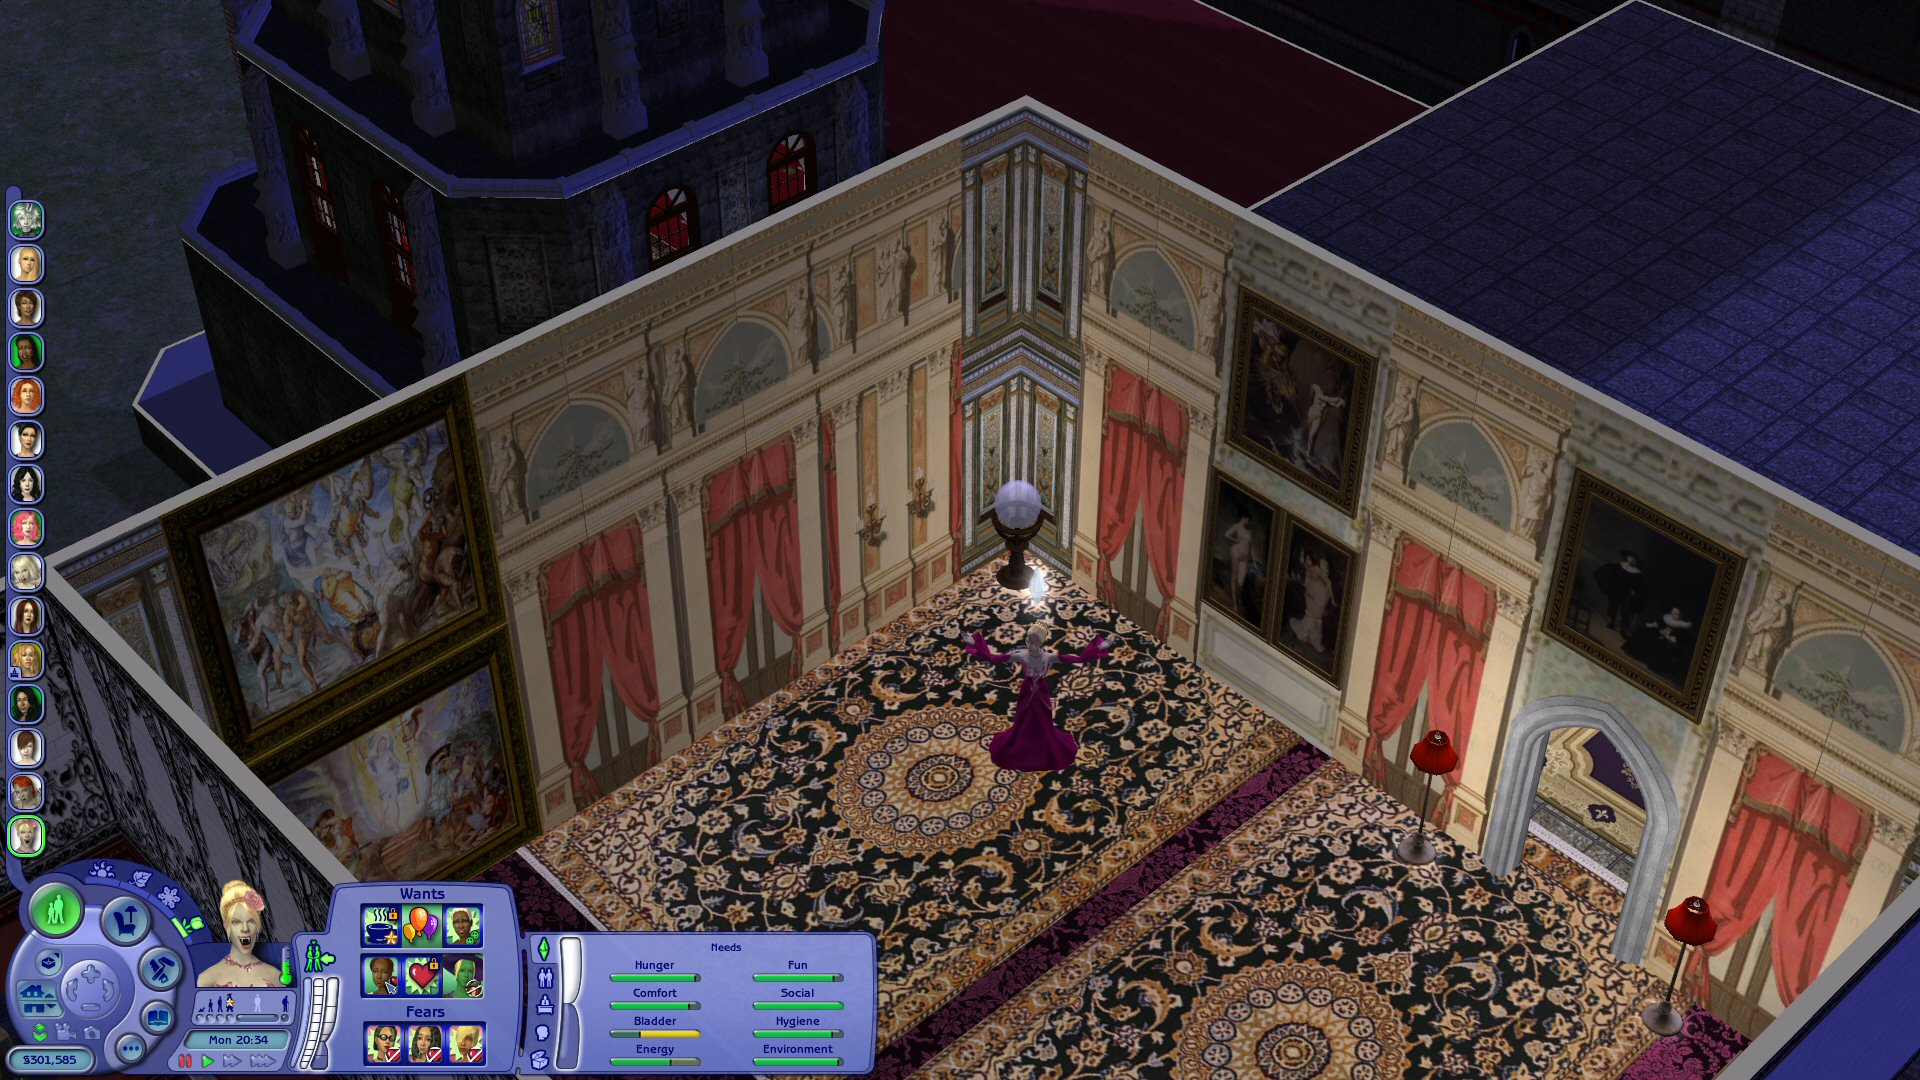 [Image: TS2-DirtCheapMansionWallpaper4.png]